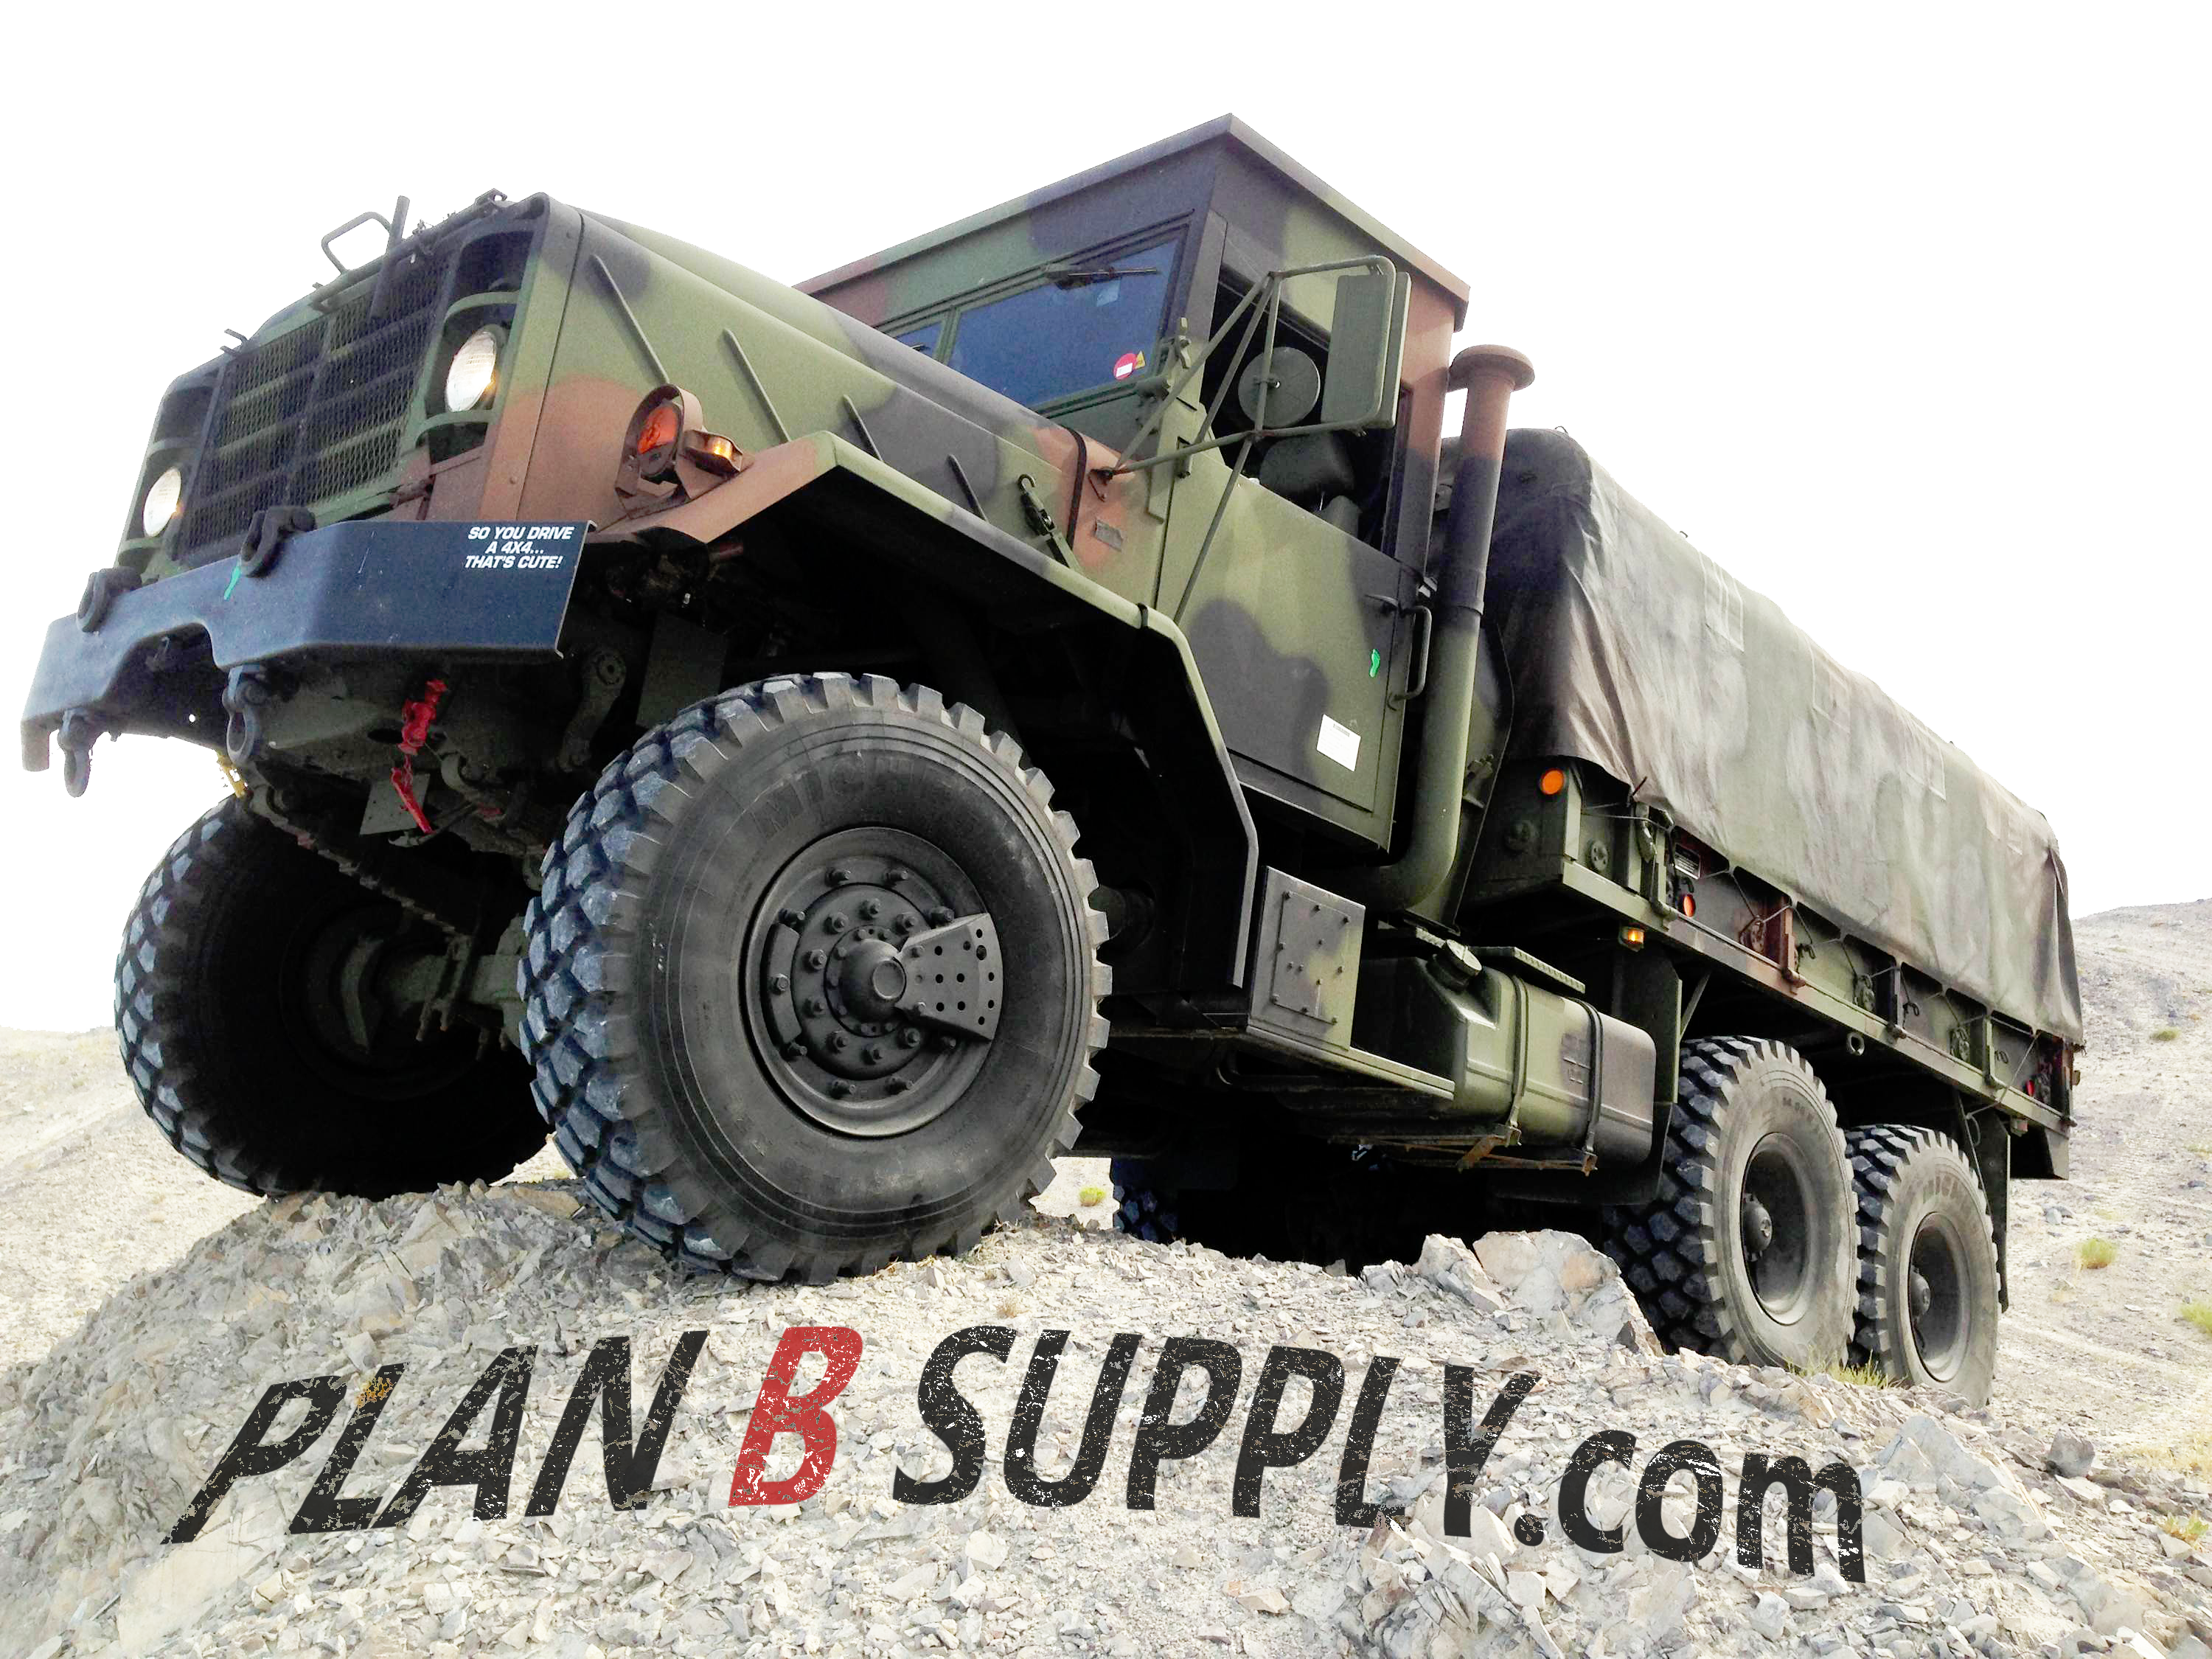 used Surplus army 6x6 trucks and vehicles for sale for